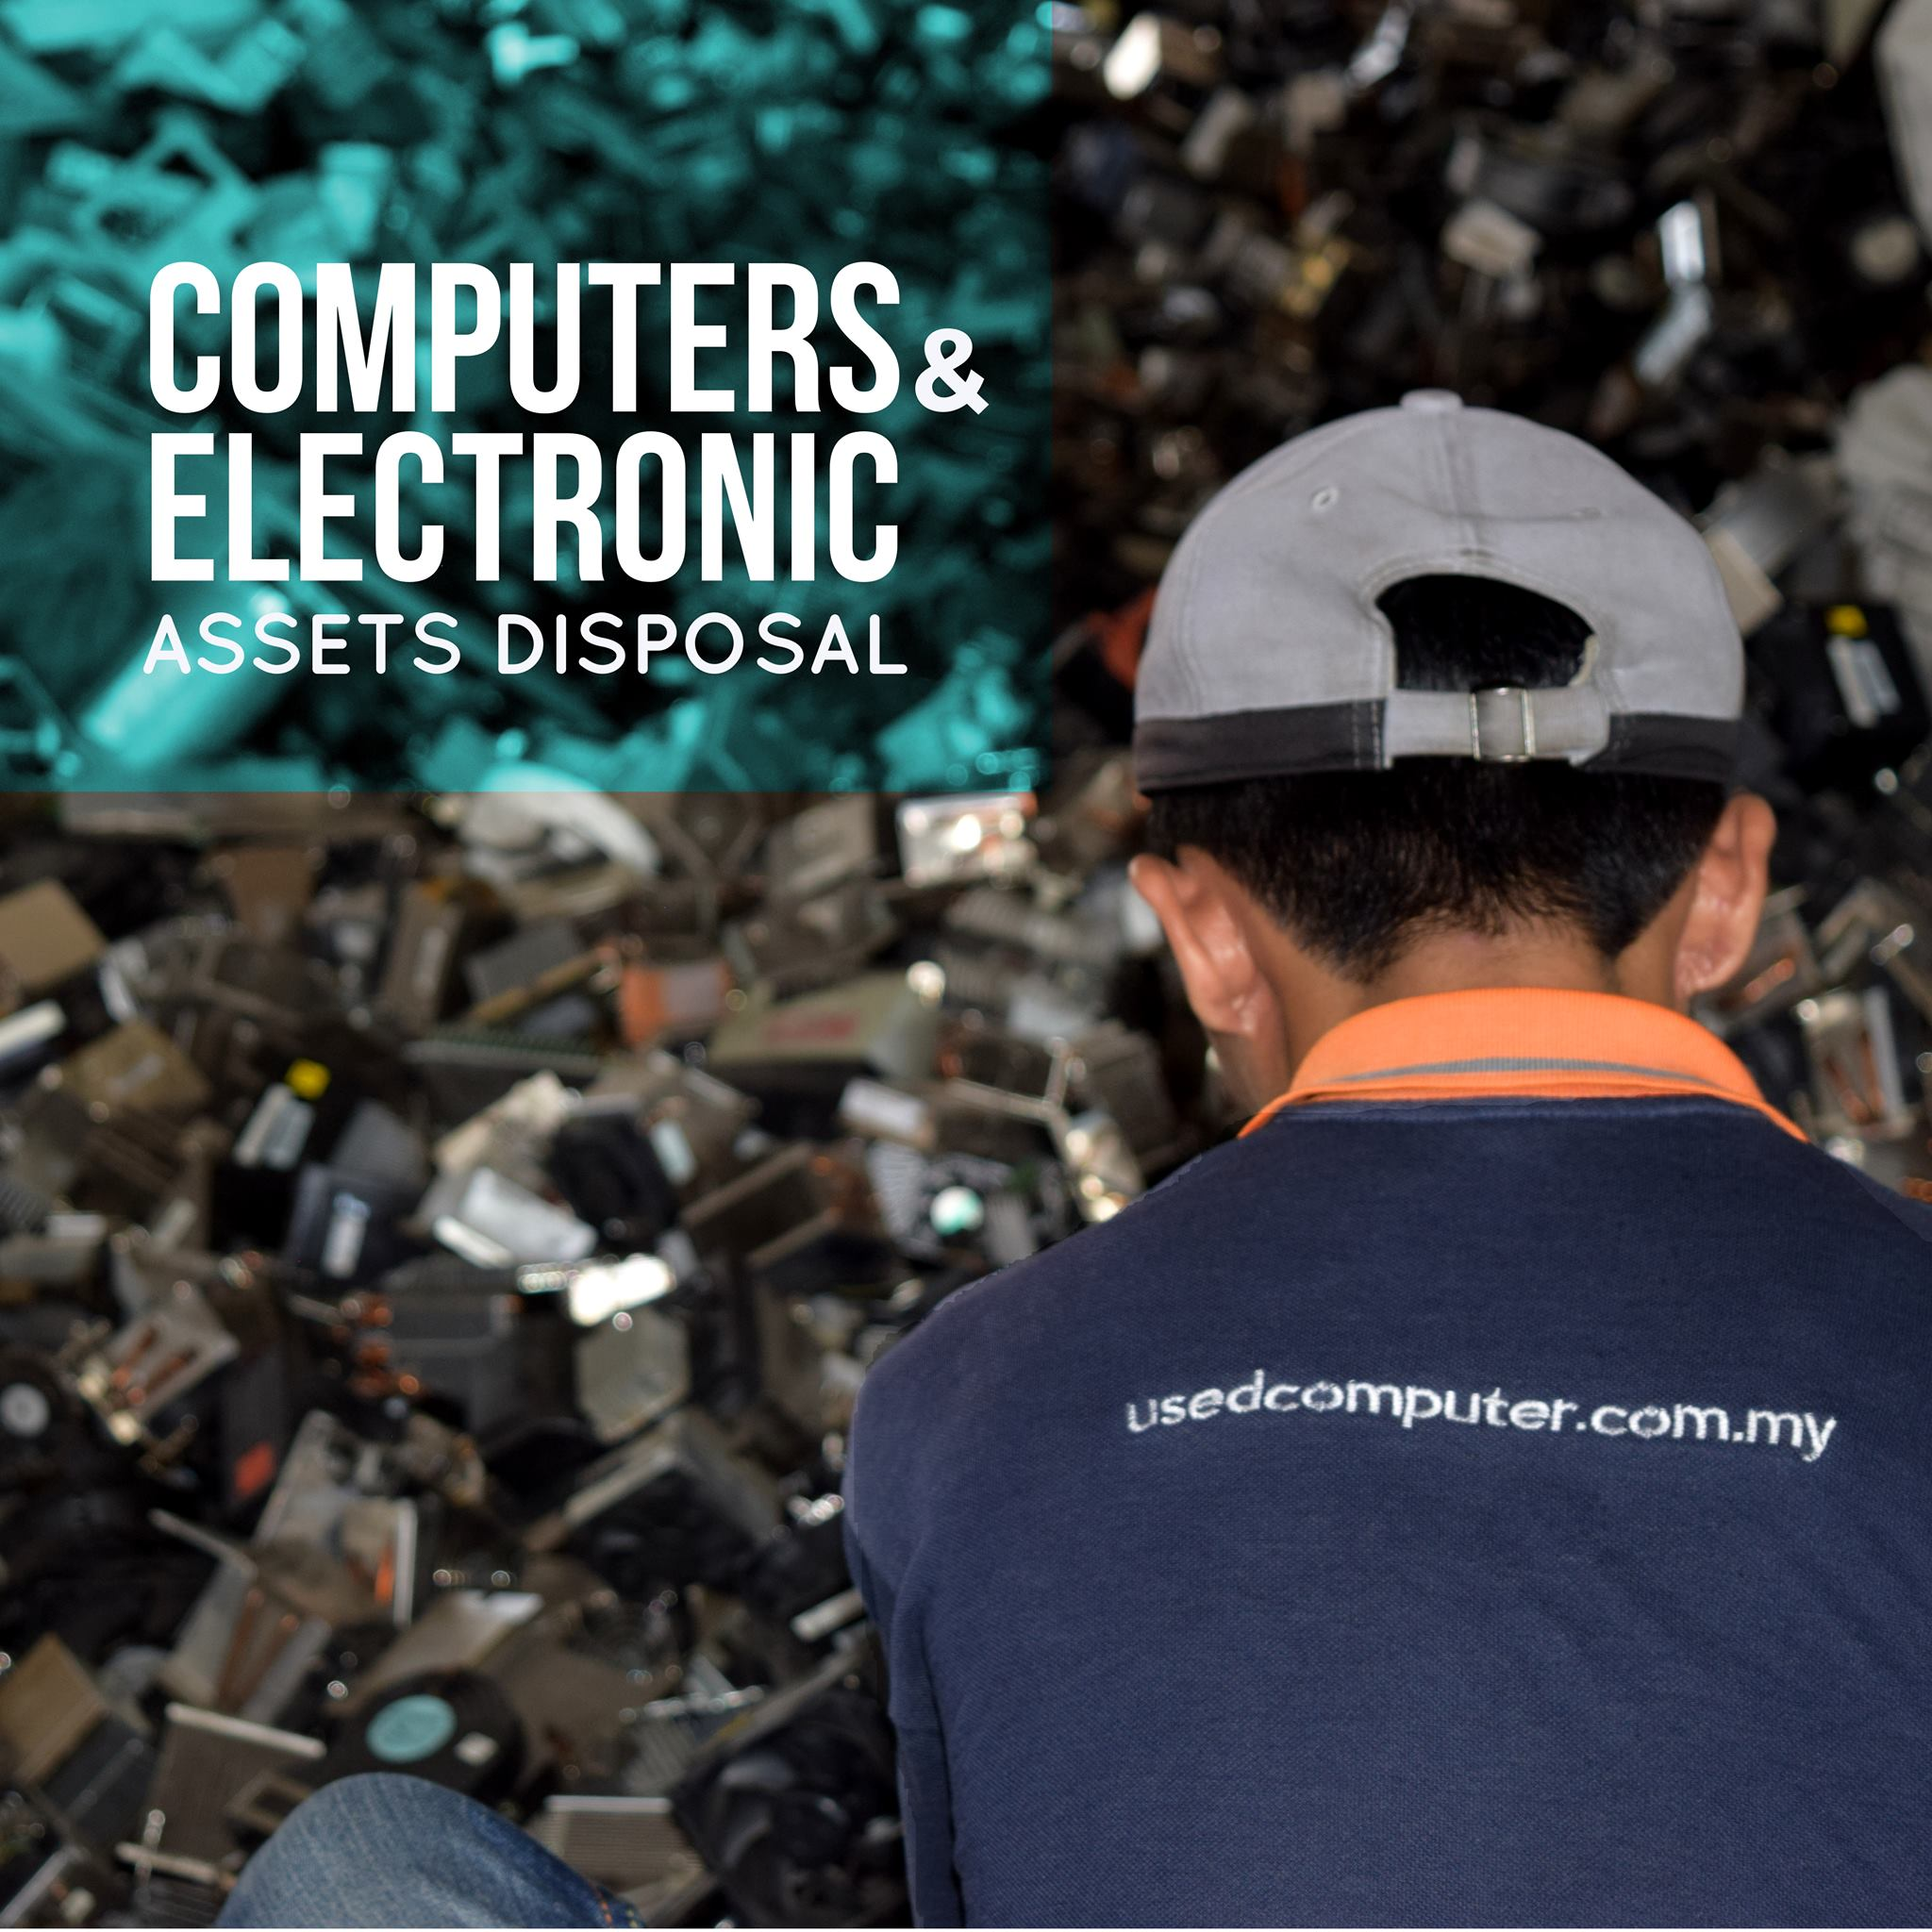 Your company can even join in the bandwagon and contact them for e-waste disposal.